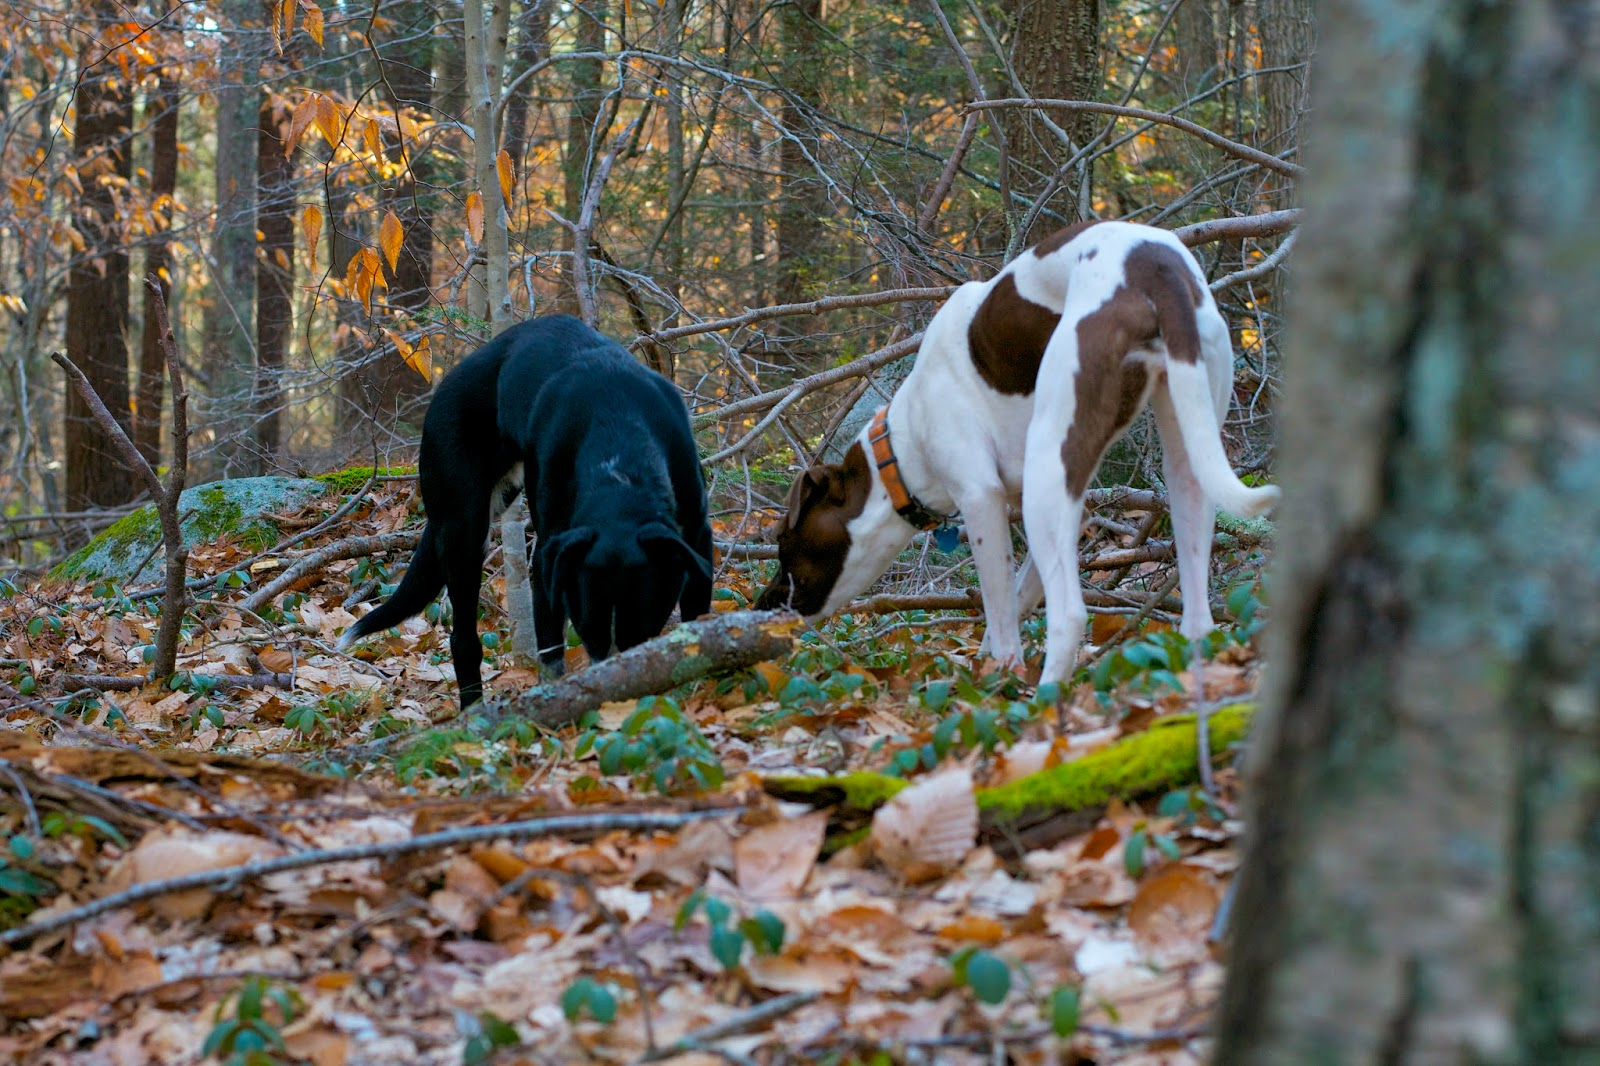 The pups sniffing for things in between their wild running spurts.